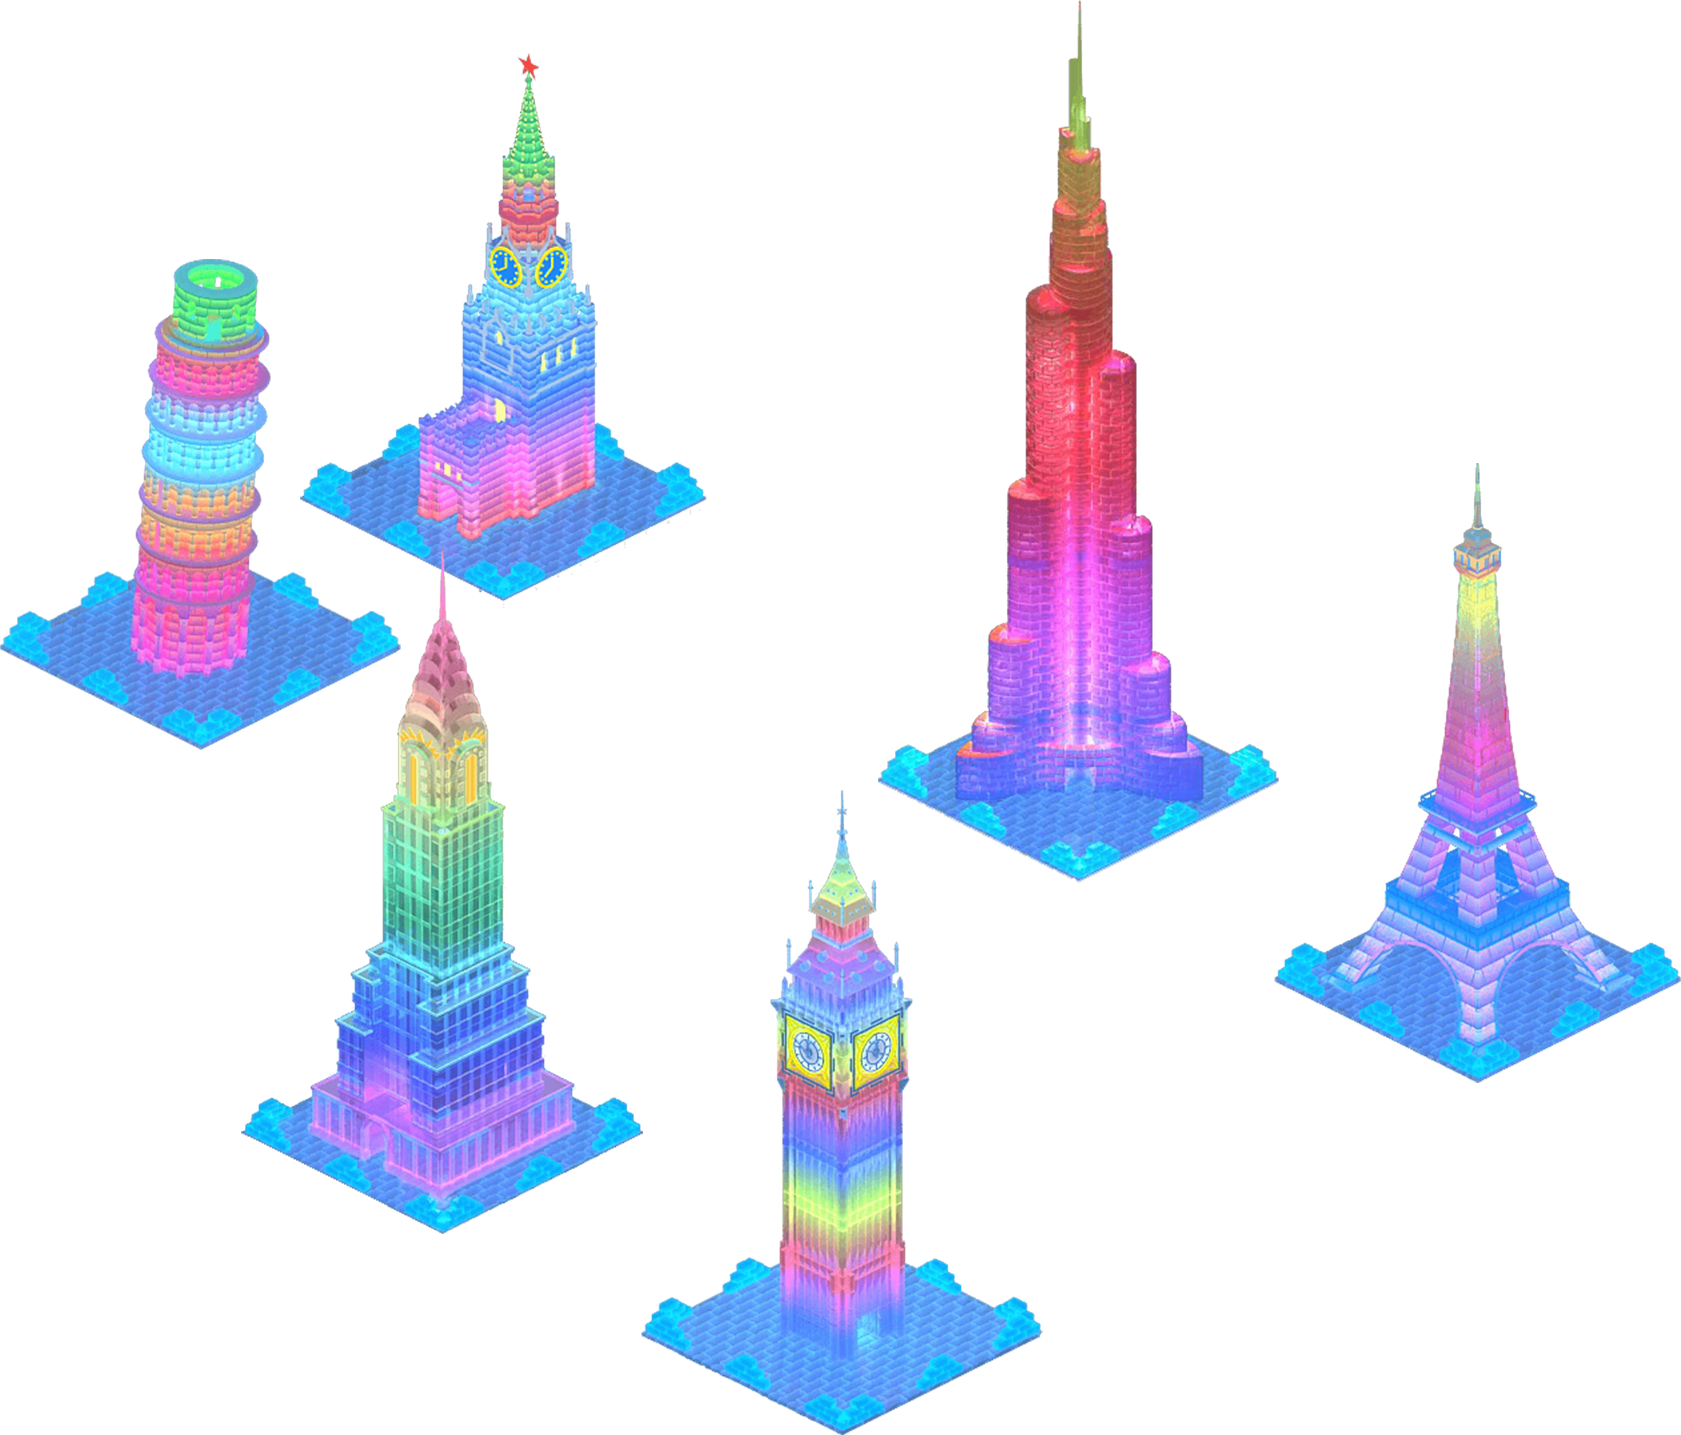 Ice Towers of the World